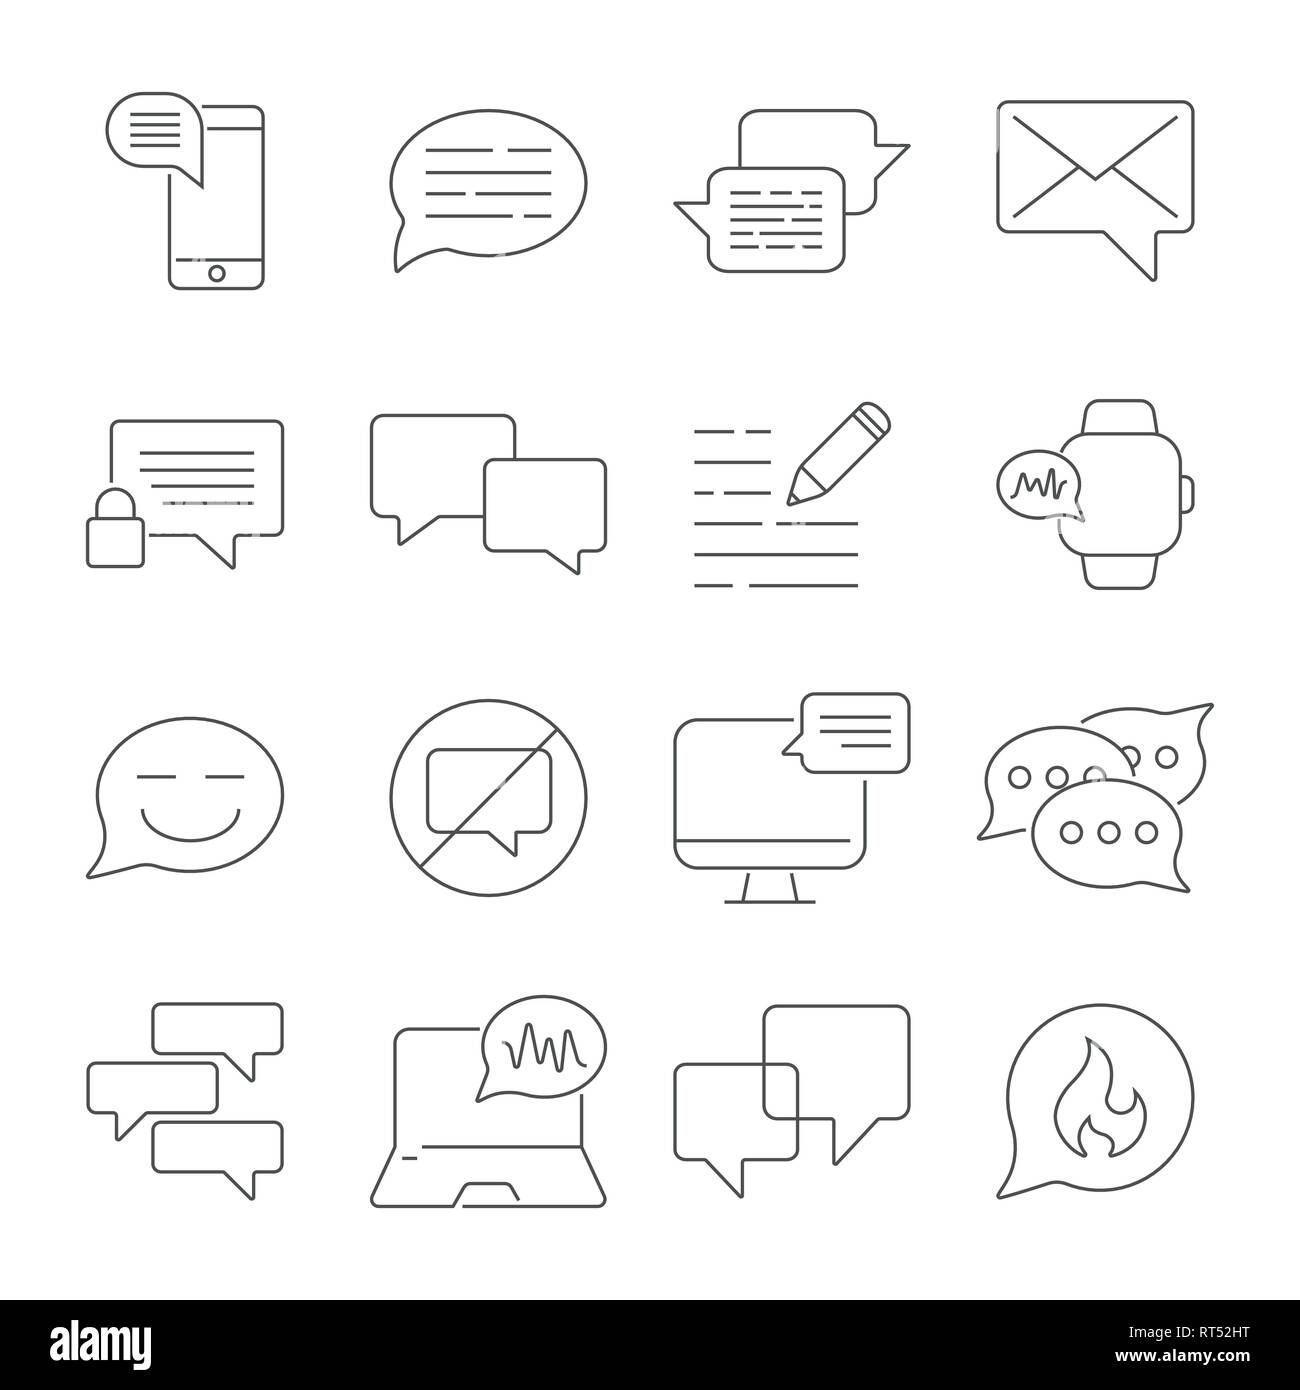 Messages and Chats line icons set. Dialog and communication linear icons. Speech bubbles outline vector sign collection. Editable Stroke. EPS 10 - Stock Image